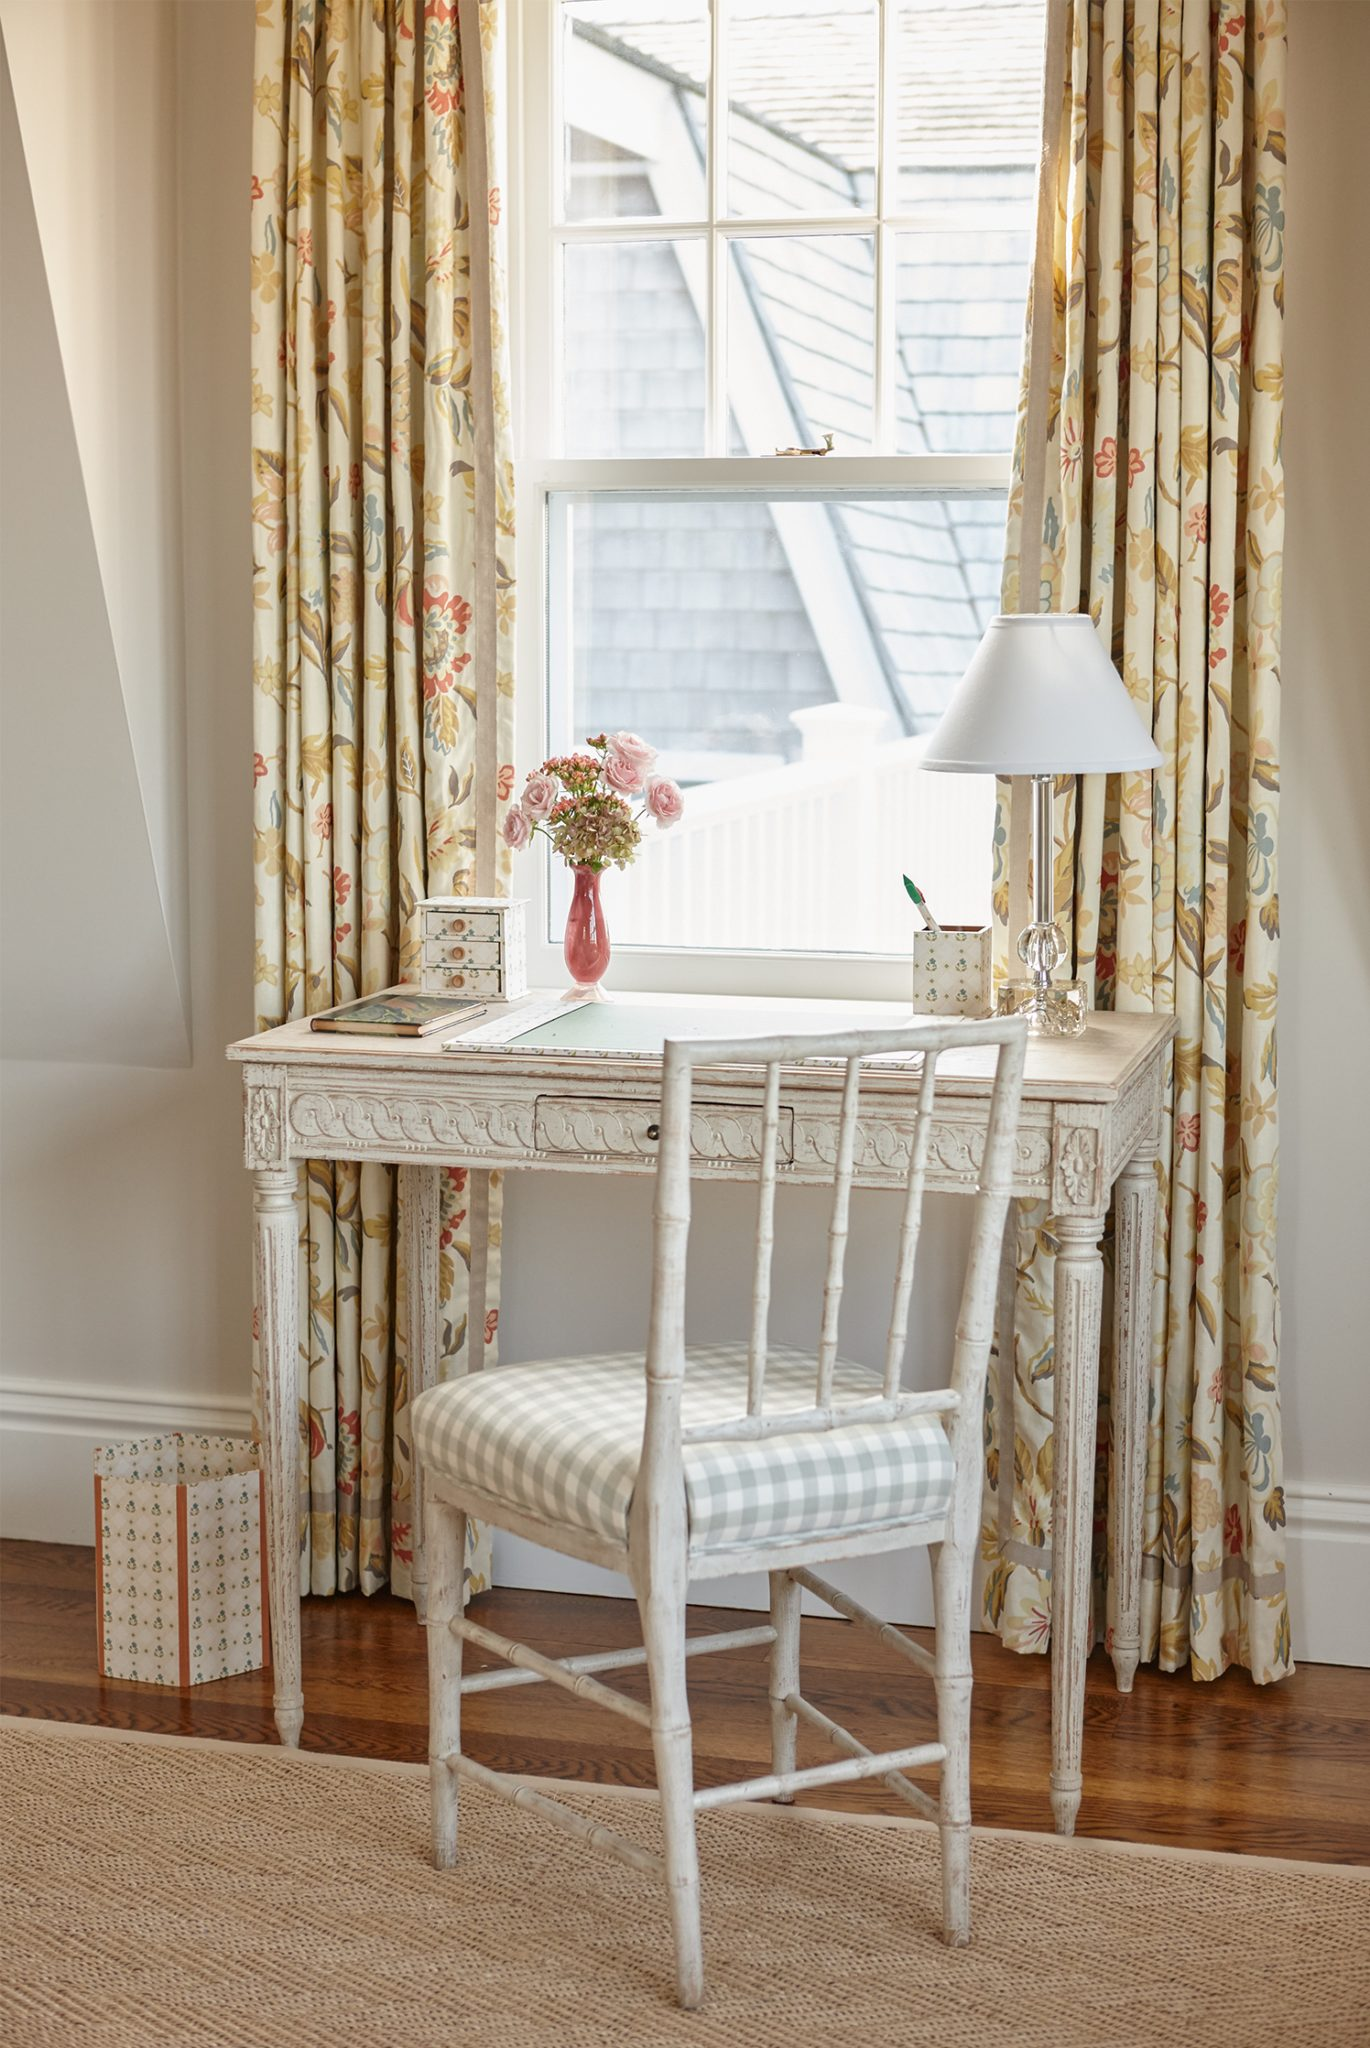 Beach house Bedroom with a Gustavian style desk and bamboo chair by Liliane Hart Interiors